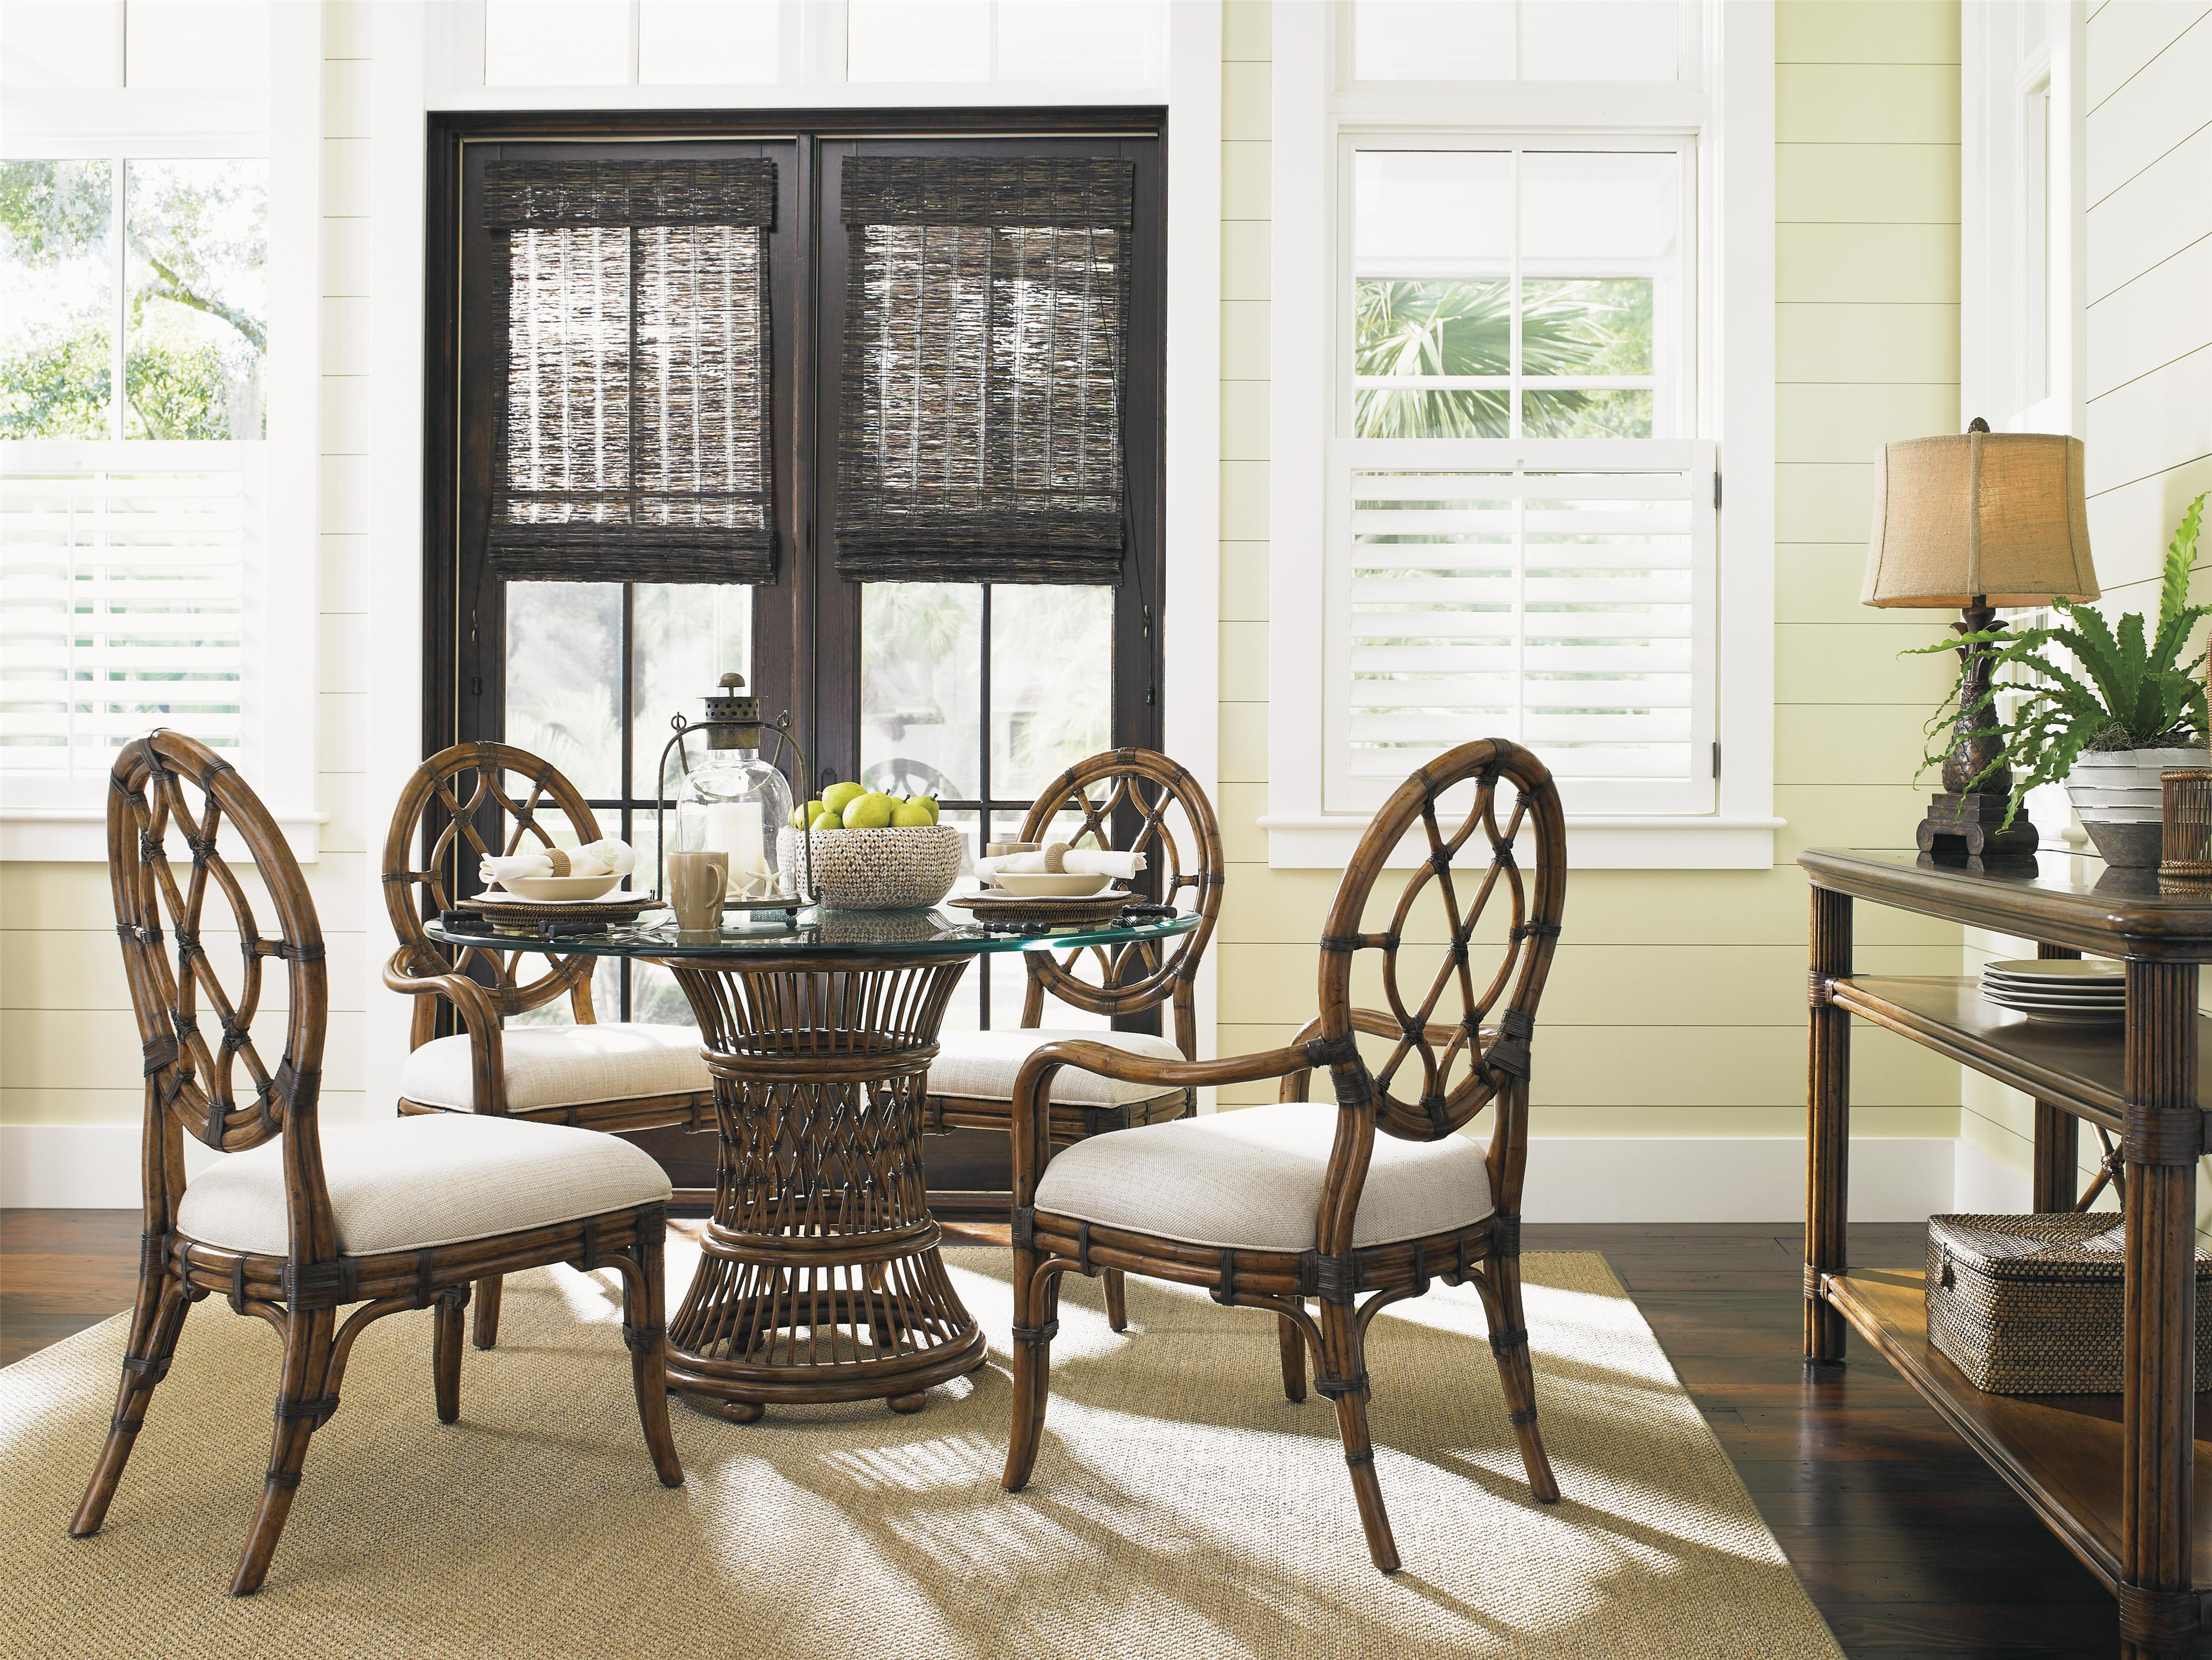 Bali Hai Tropical 5 Piece Dining Room Set by Tommy Bahama Home at Baer's Furniture